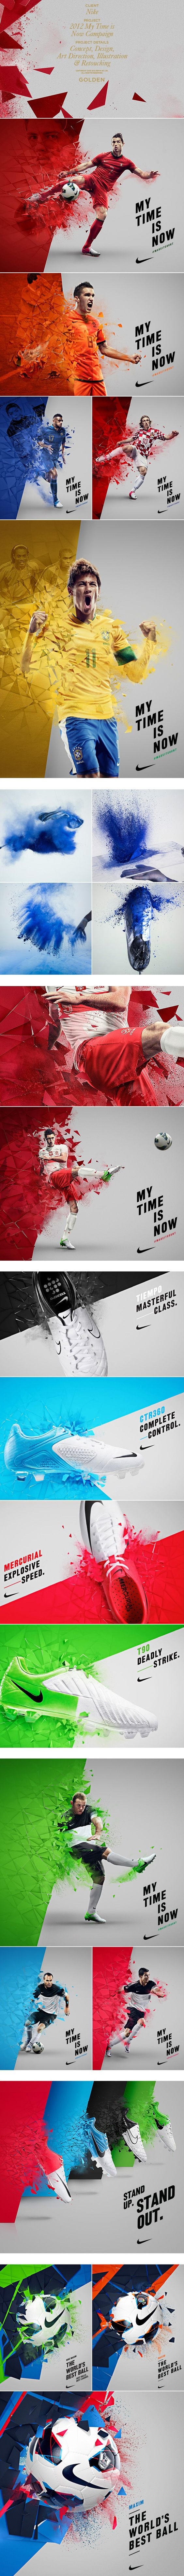 Marketing THROUGH Sports Product: Nike Products People: Europeans Place: Magazine Ads Price: Price of any given Nike Soccer product